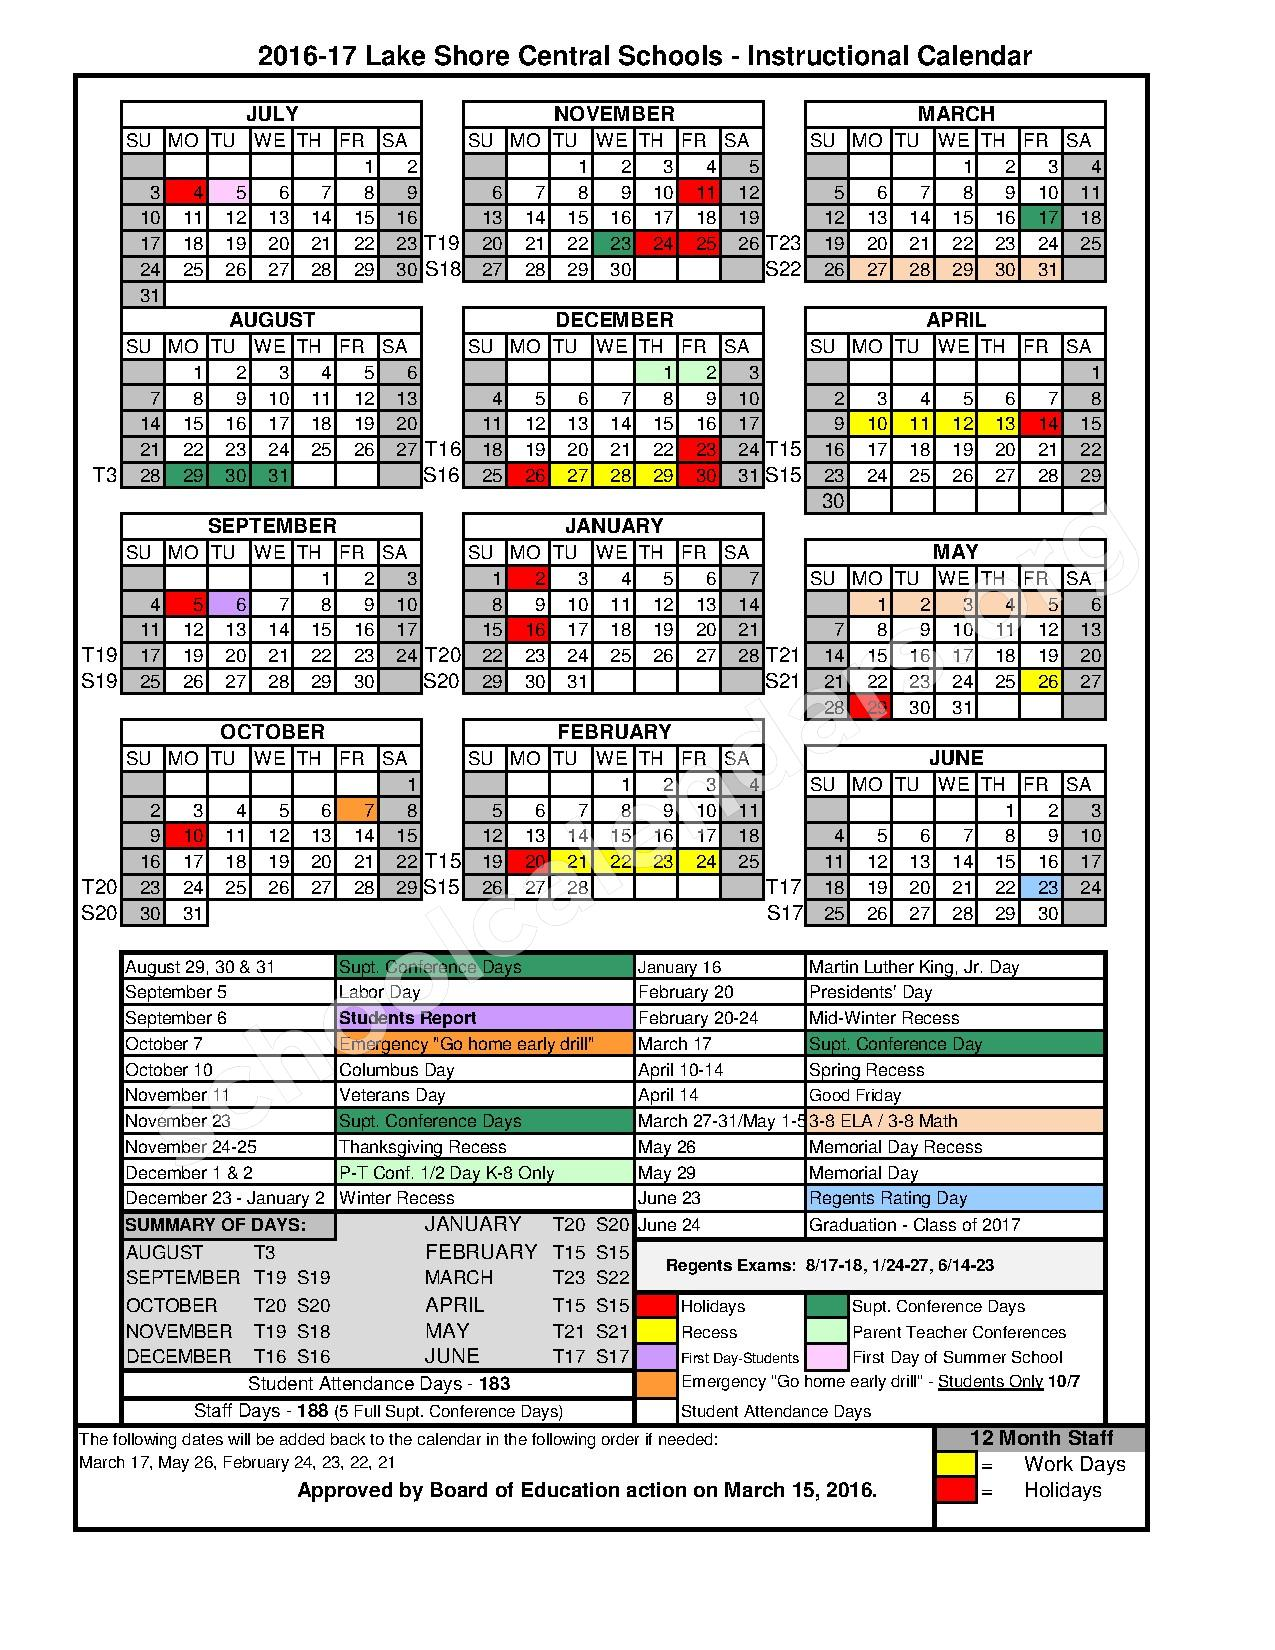 2016 - 2017 Instructional Calendar – Evans-Brant Central School District (Lake Shore) – page 1